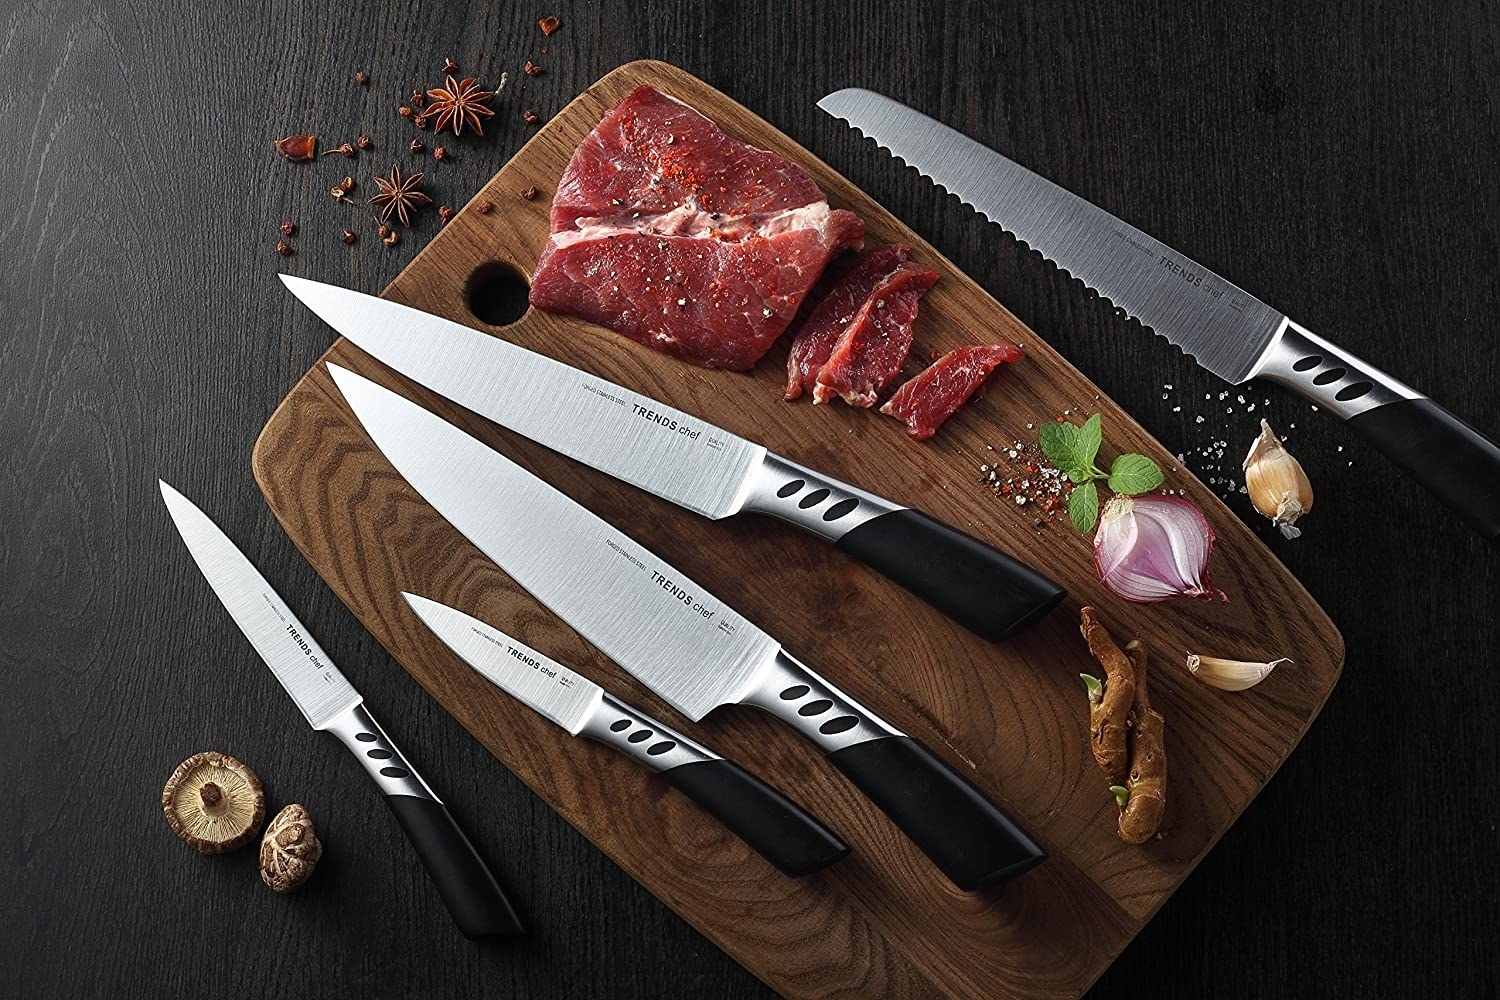 The five knives laying on a cutting board with steak, garlic, mushrooms, and spices